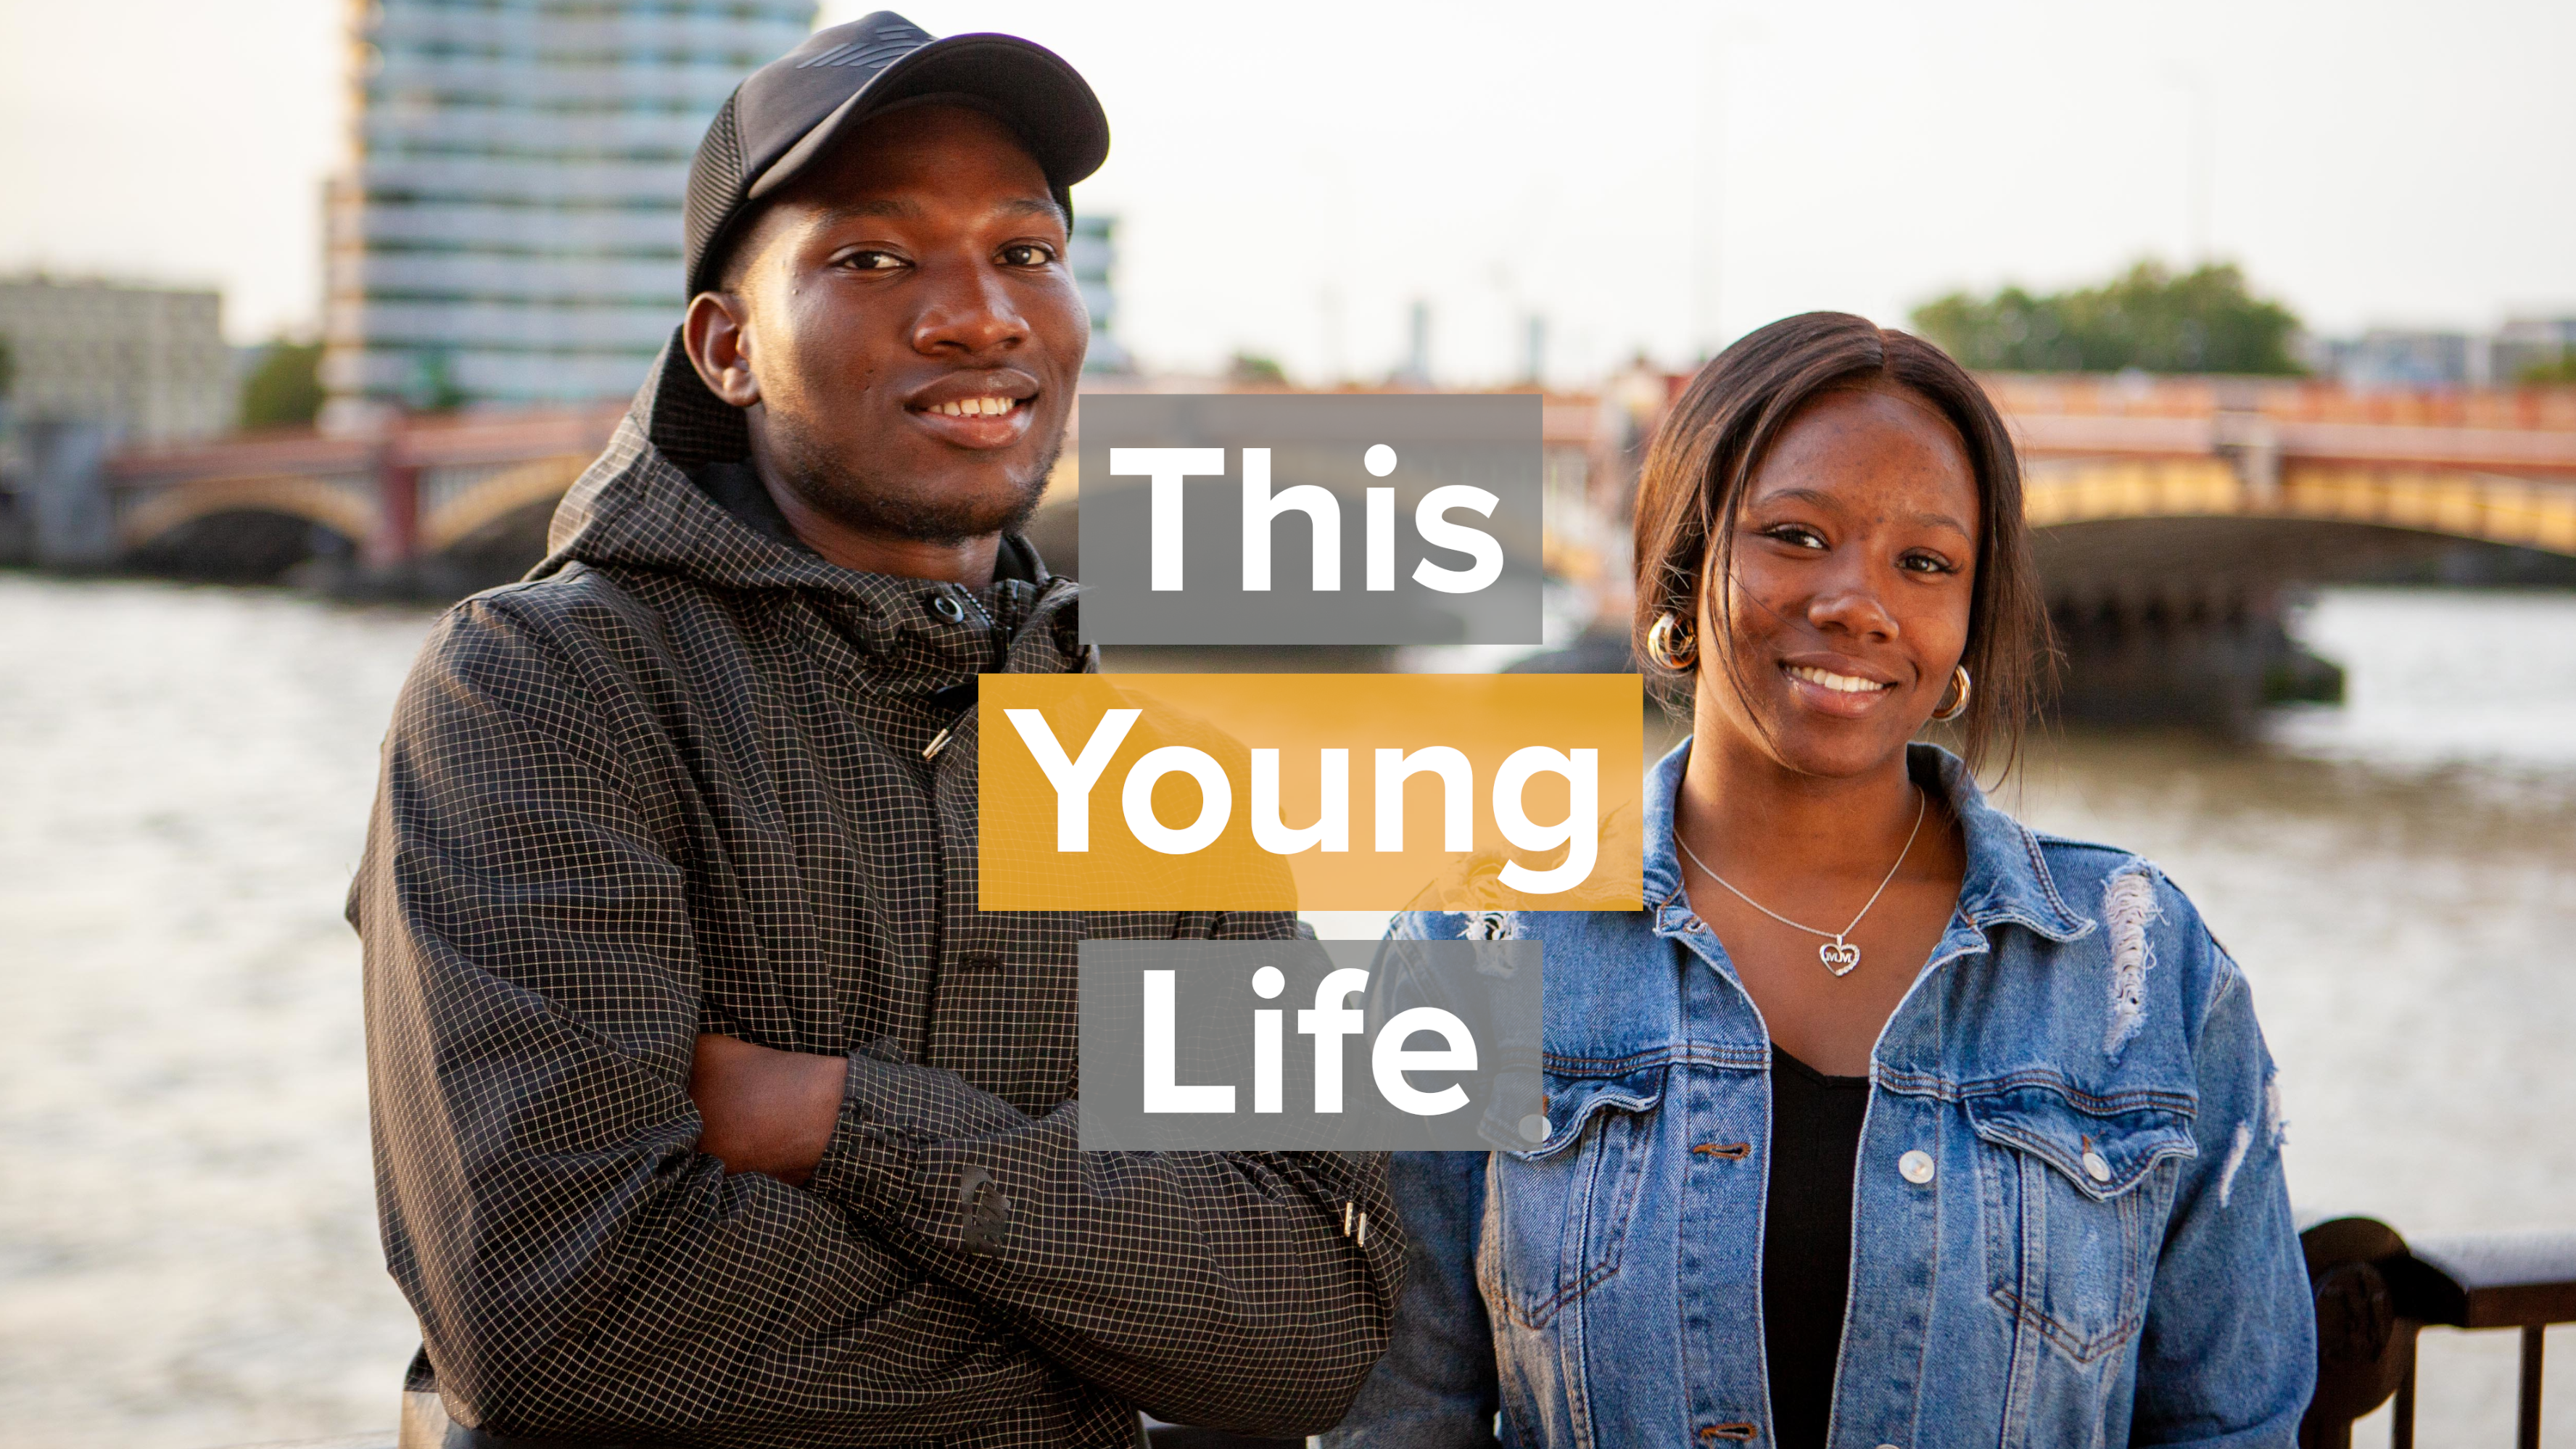 This Young Life is a new podcast from Just for Kids Law